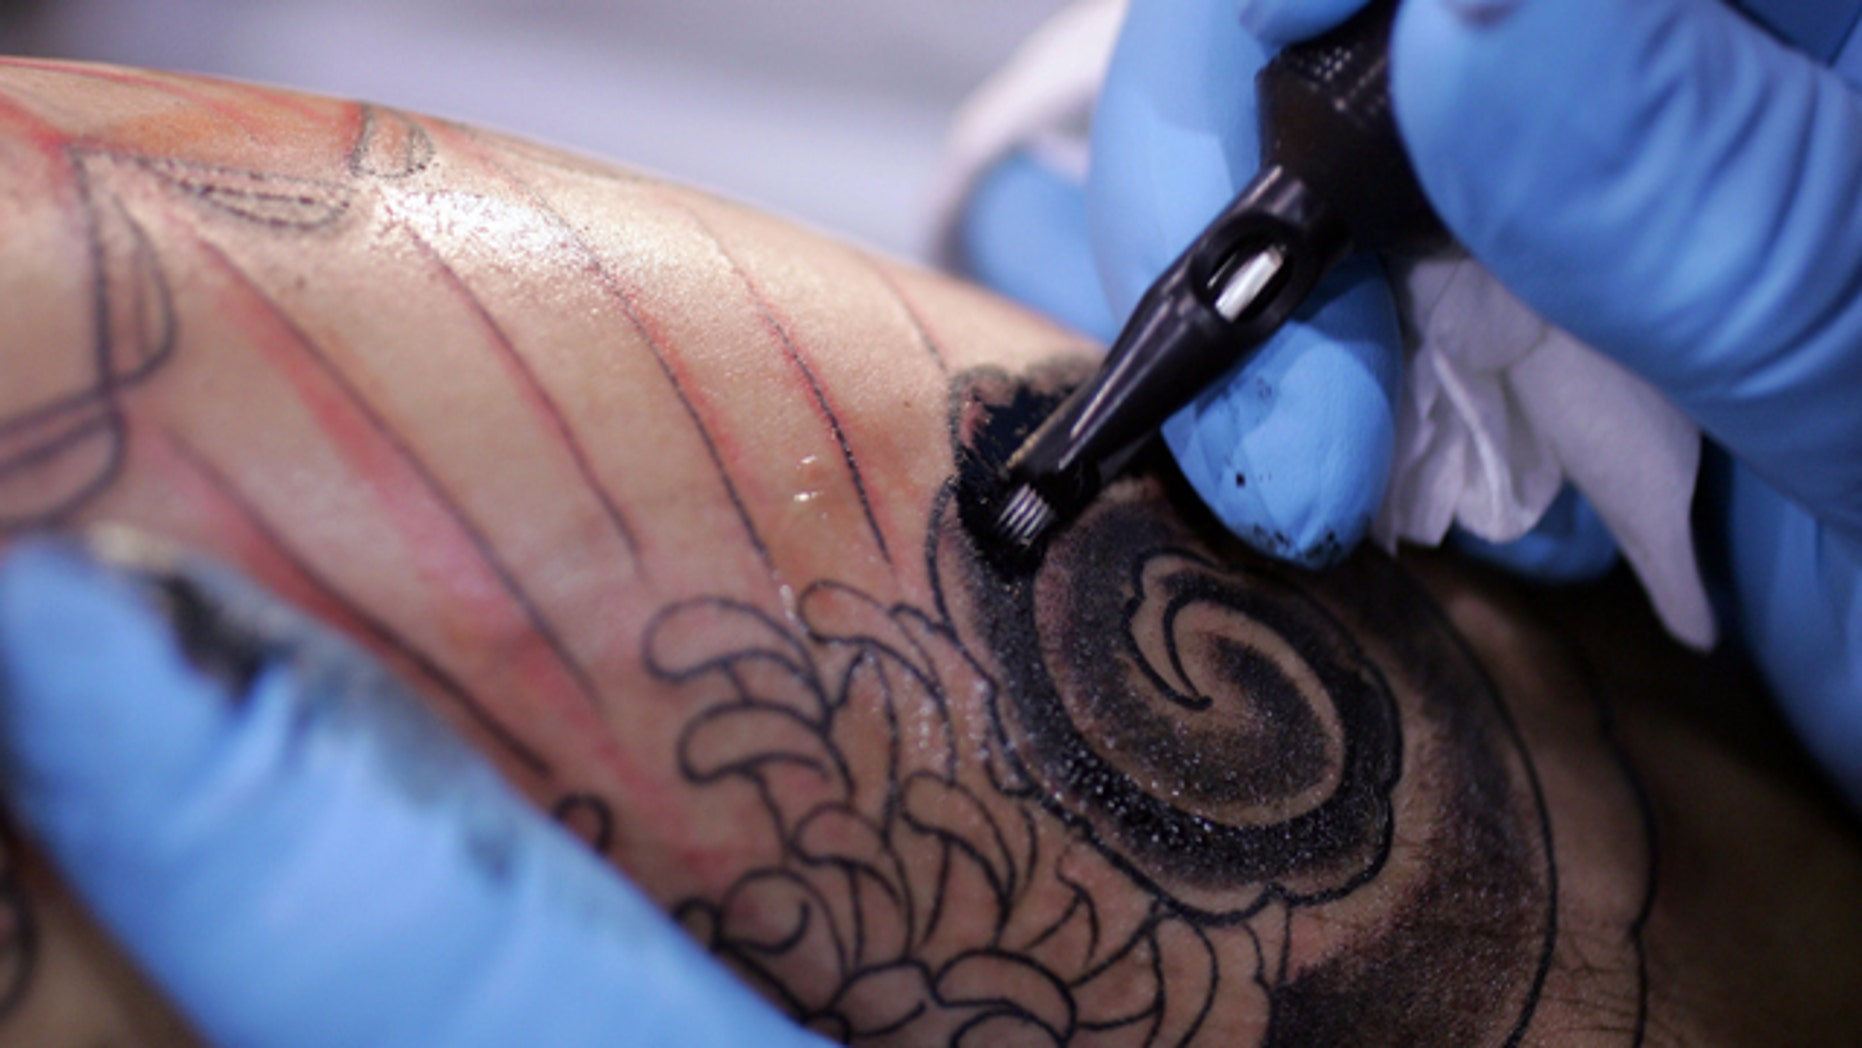 FILE - This Jsn. 6, 2006, file photo shows a tattoo artist from Los Angels during the Body Art Expo at the Los Angeles county fairgrounds in Pomona, Calif. (AP Photo/Chris Carlson, File)